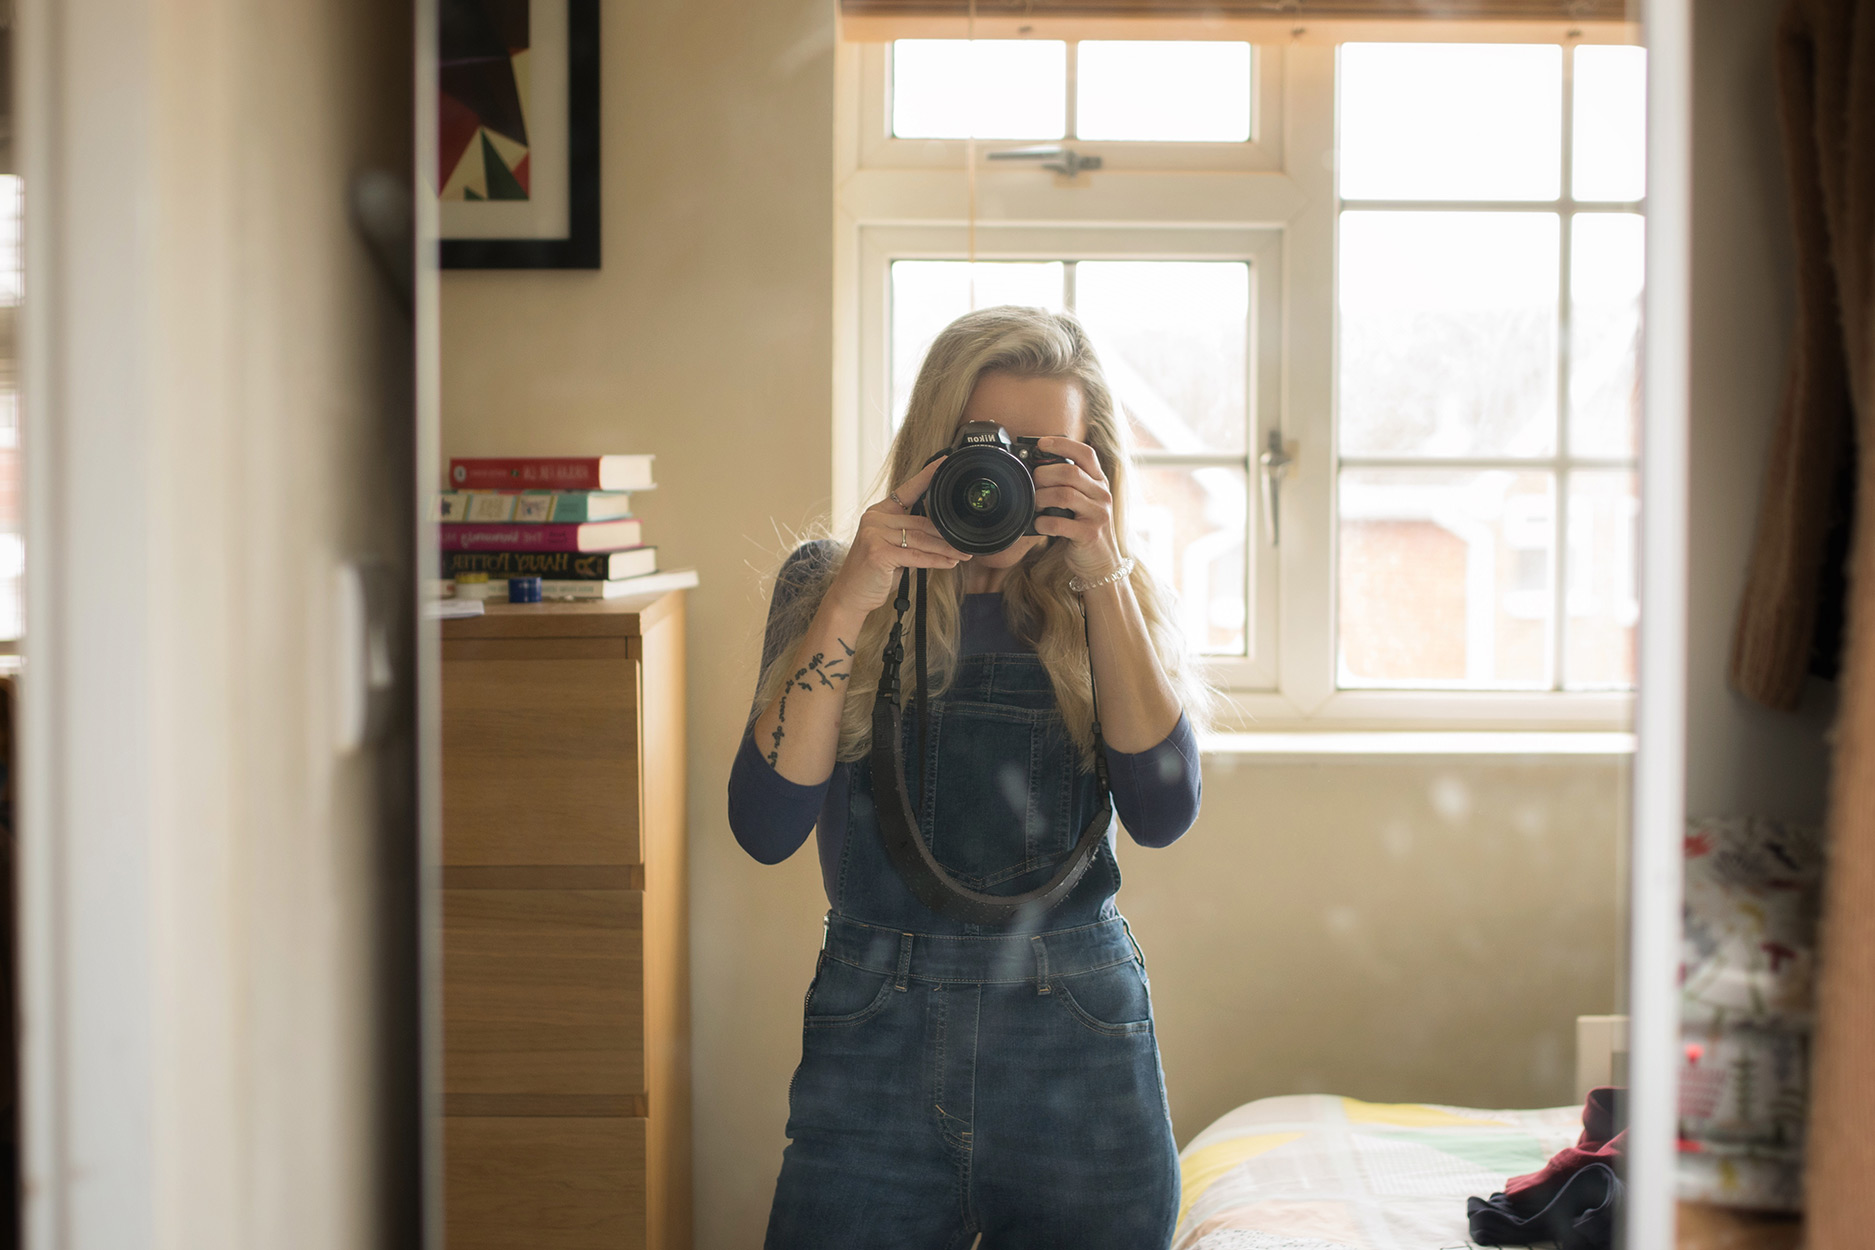 Mum wearing denim H&M dungarees taking a selfie, candid photography taken on Nikon D3300